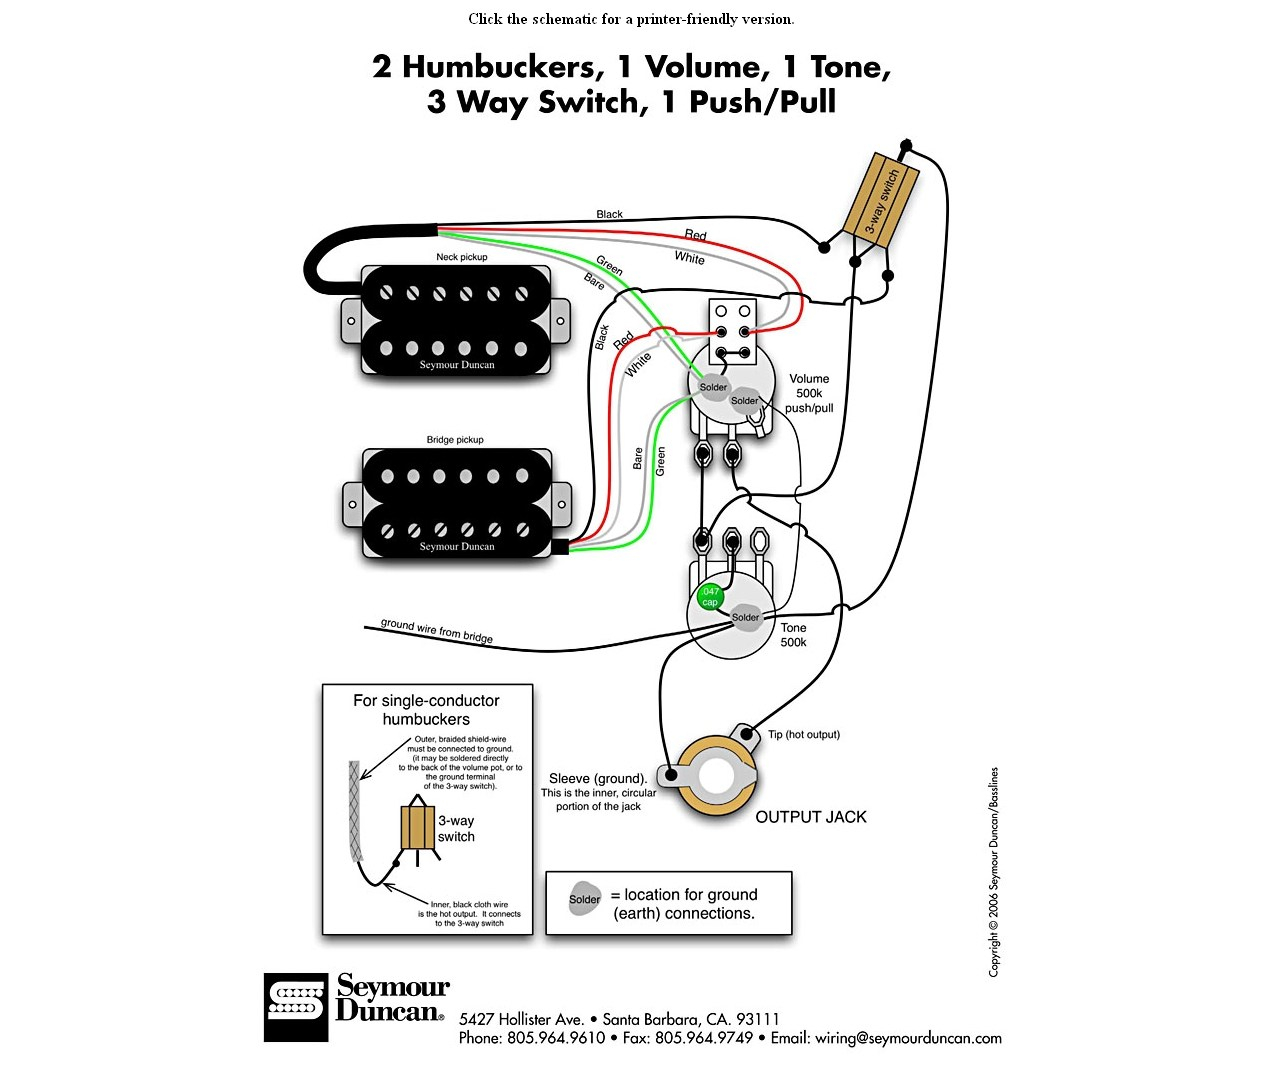 [DIAGRAM_38YU]  DIAGRAM] Humbucker Pickup Coil Tap Wiring Diagram FULL Version HD Quality Wiring  Diagram - 191458.ACCNET.FR | 3 Conductor Humbucker Pickup Wiring Diagram |  | Process Flow Diagram Haccp - accnet.fr